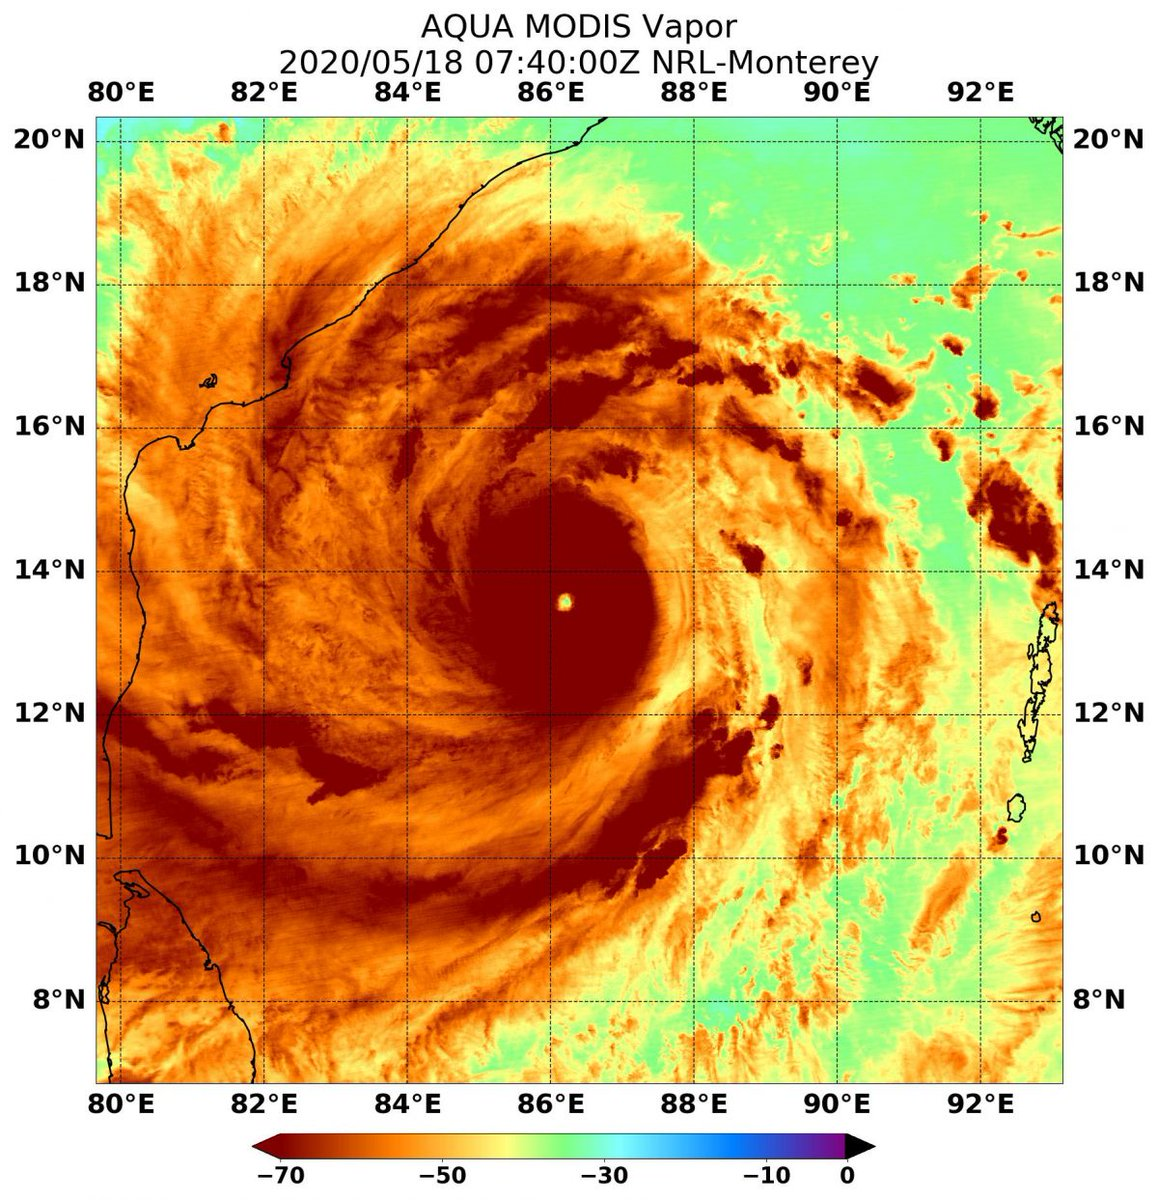 More Amphan imagery here: blogs.nasa.gov/hurricanes/tag…